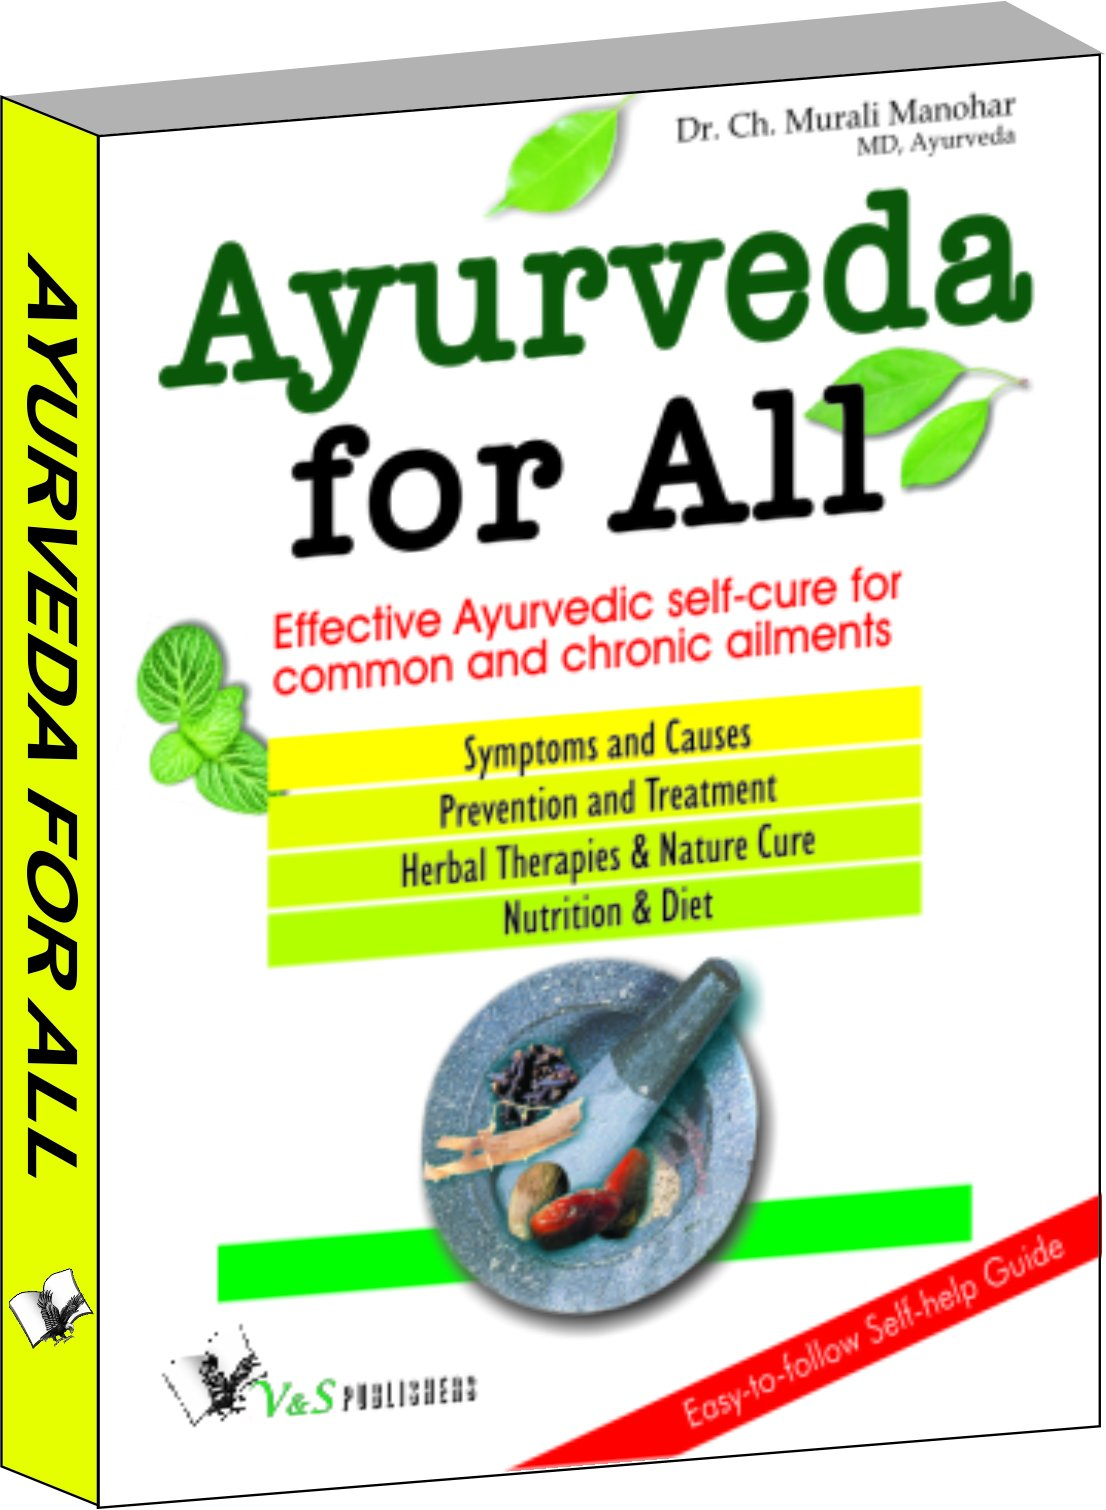 Buy Ayurveda For All Book Online At Low Prices In India  Ayurveda For All  Reviews & Ratings  Amazon